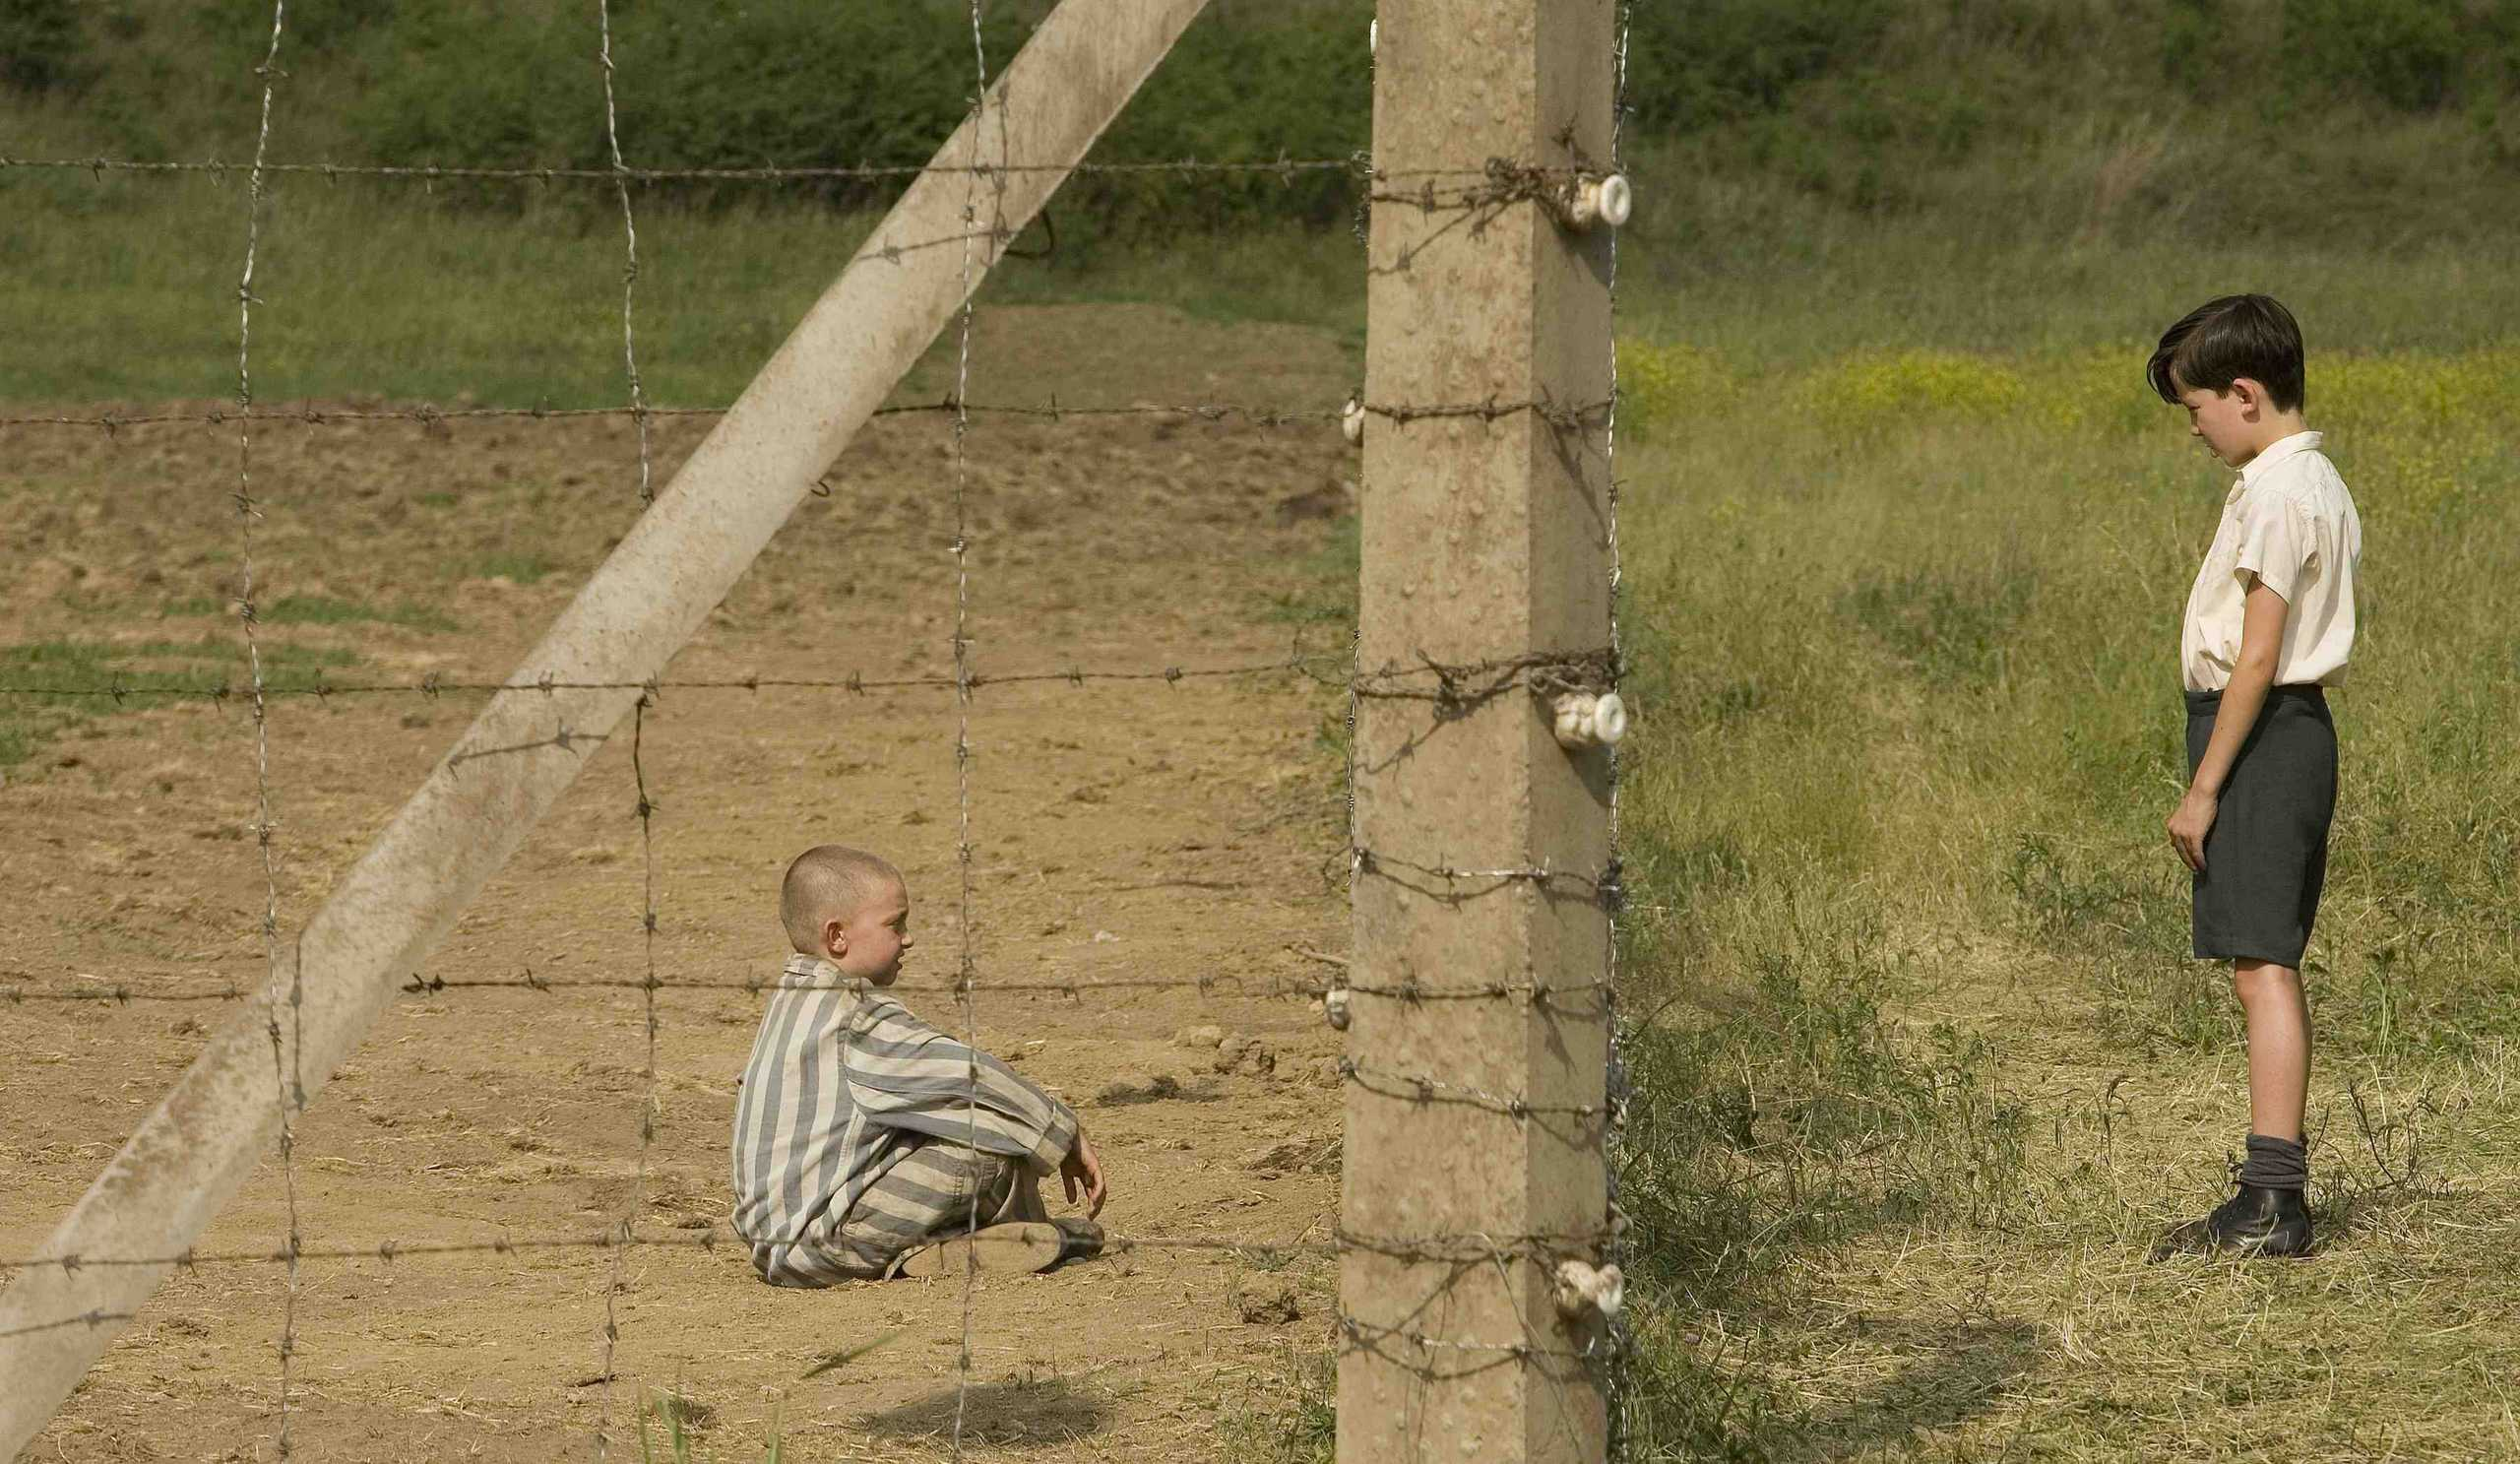 https://i2.wp.com/images2.fanpop.com/images/photos/6900000/The-Boy-In-The-Striped-Pyjamas-the-boy-in-the-striped-pyjamas-6938241-2560-1487.jpg